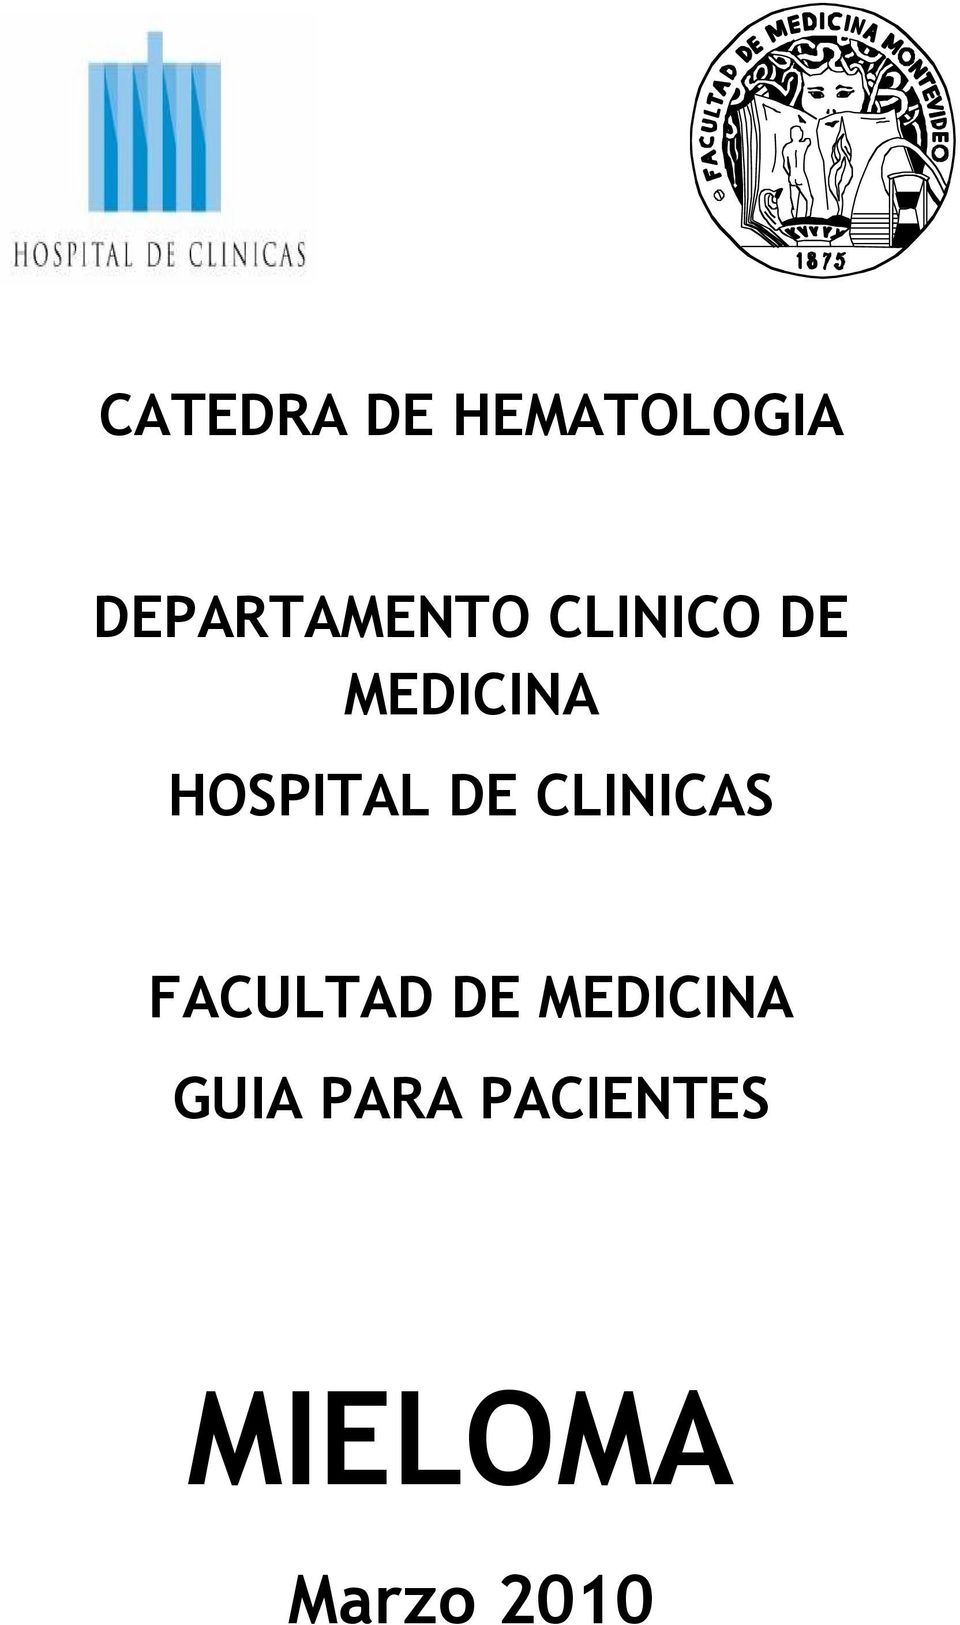 HOSPITAL DE CLINICAS FACULTAD DE